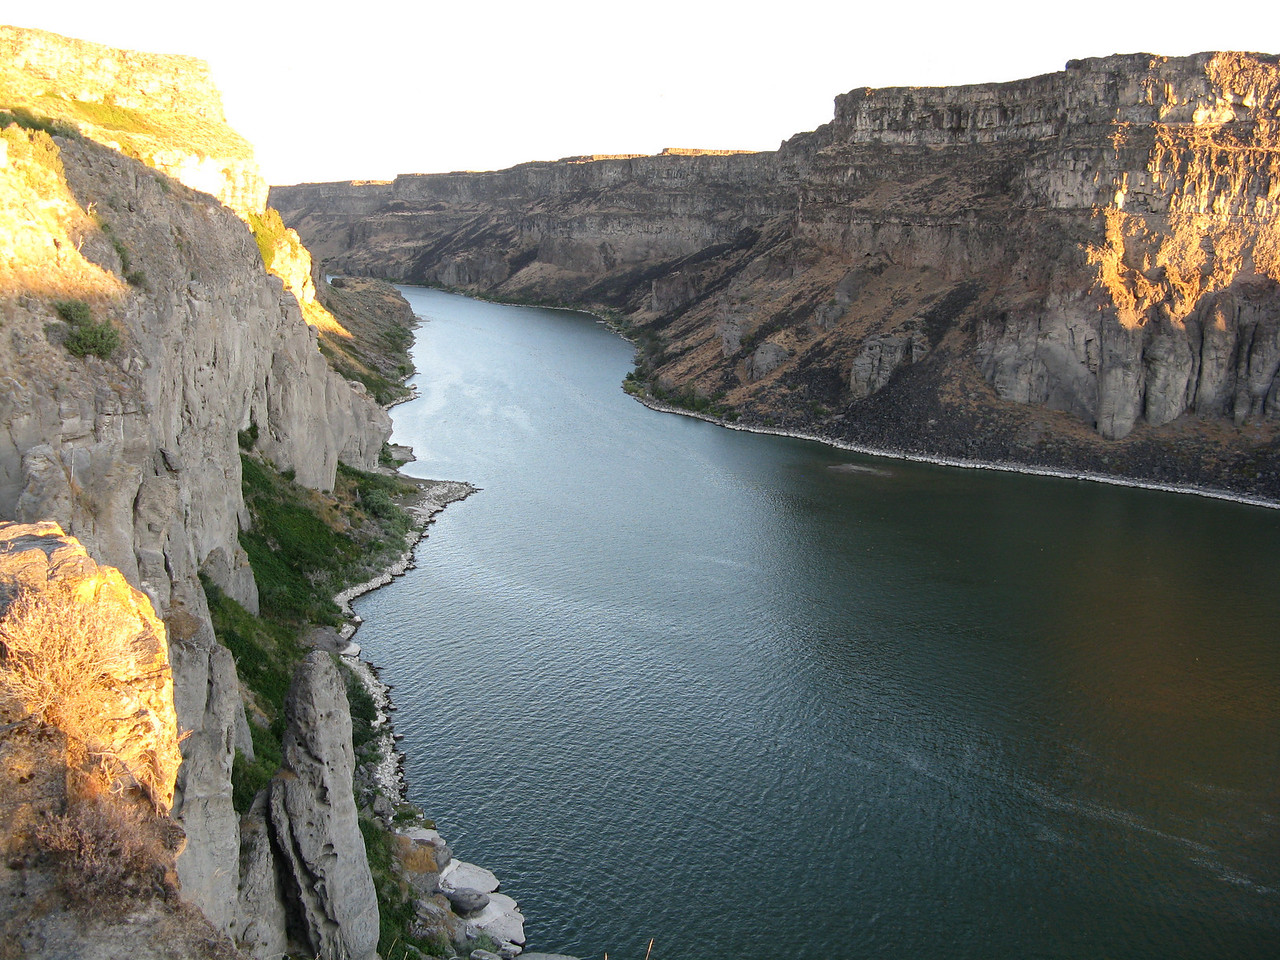 The Snake River, just downriver from Shoshone Falls.